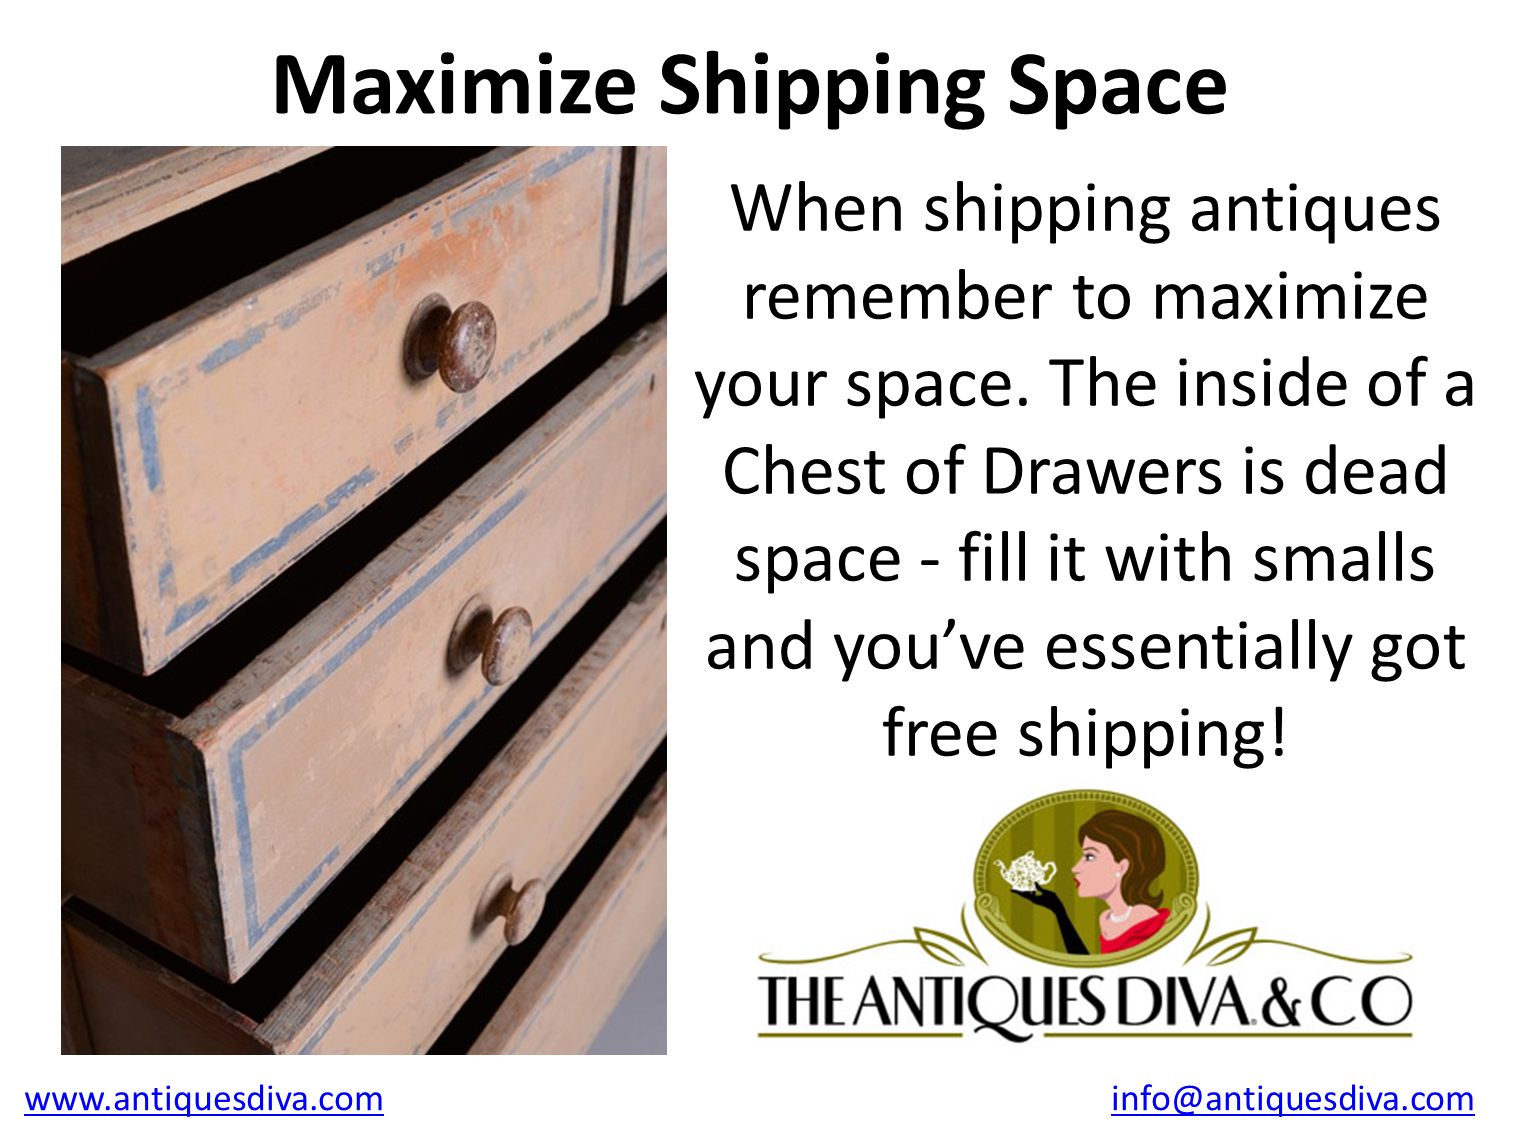 Consolidated shipments, Groupage, Shipping antiques from Europe, Antiques Diva Buying Services, How do I ship antiques from Europe